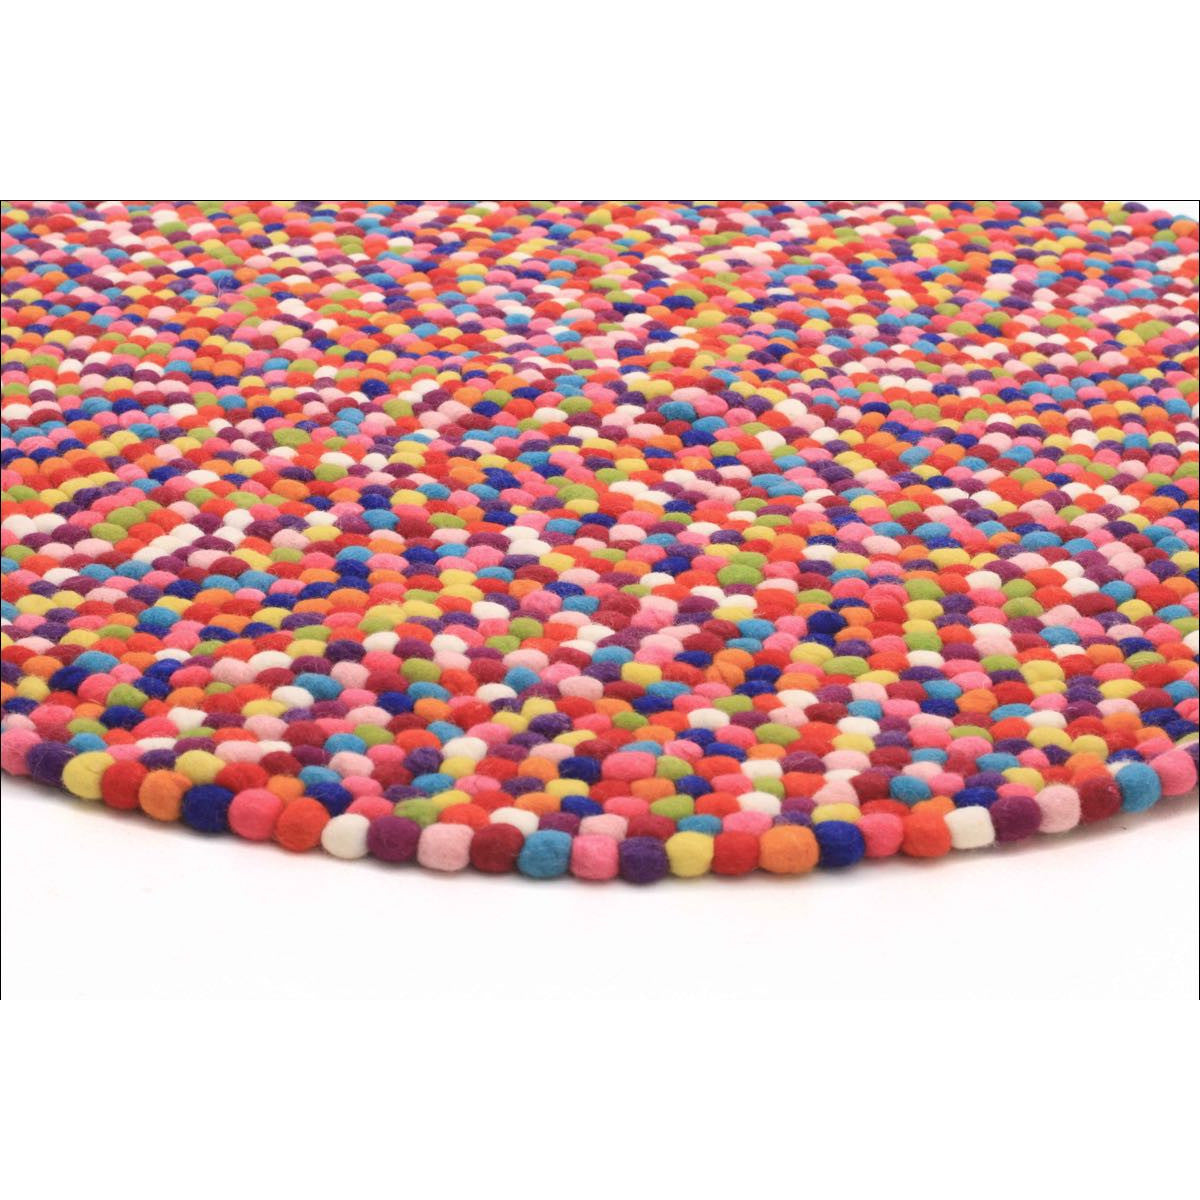 Round Colourful Rugs